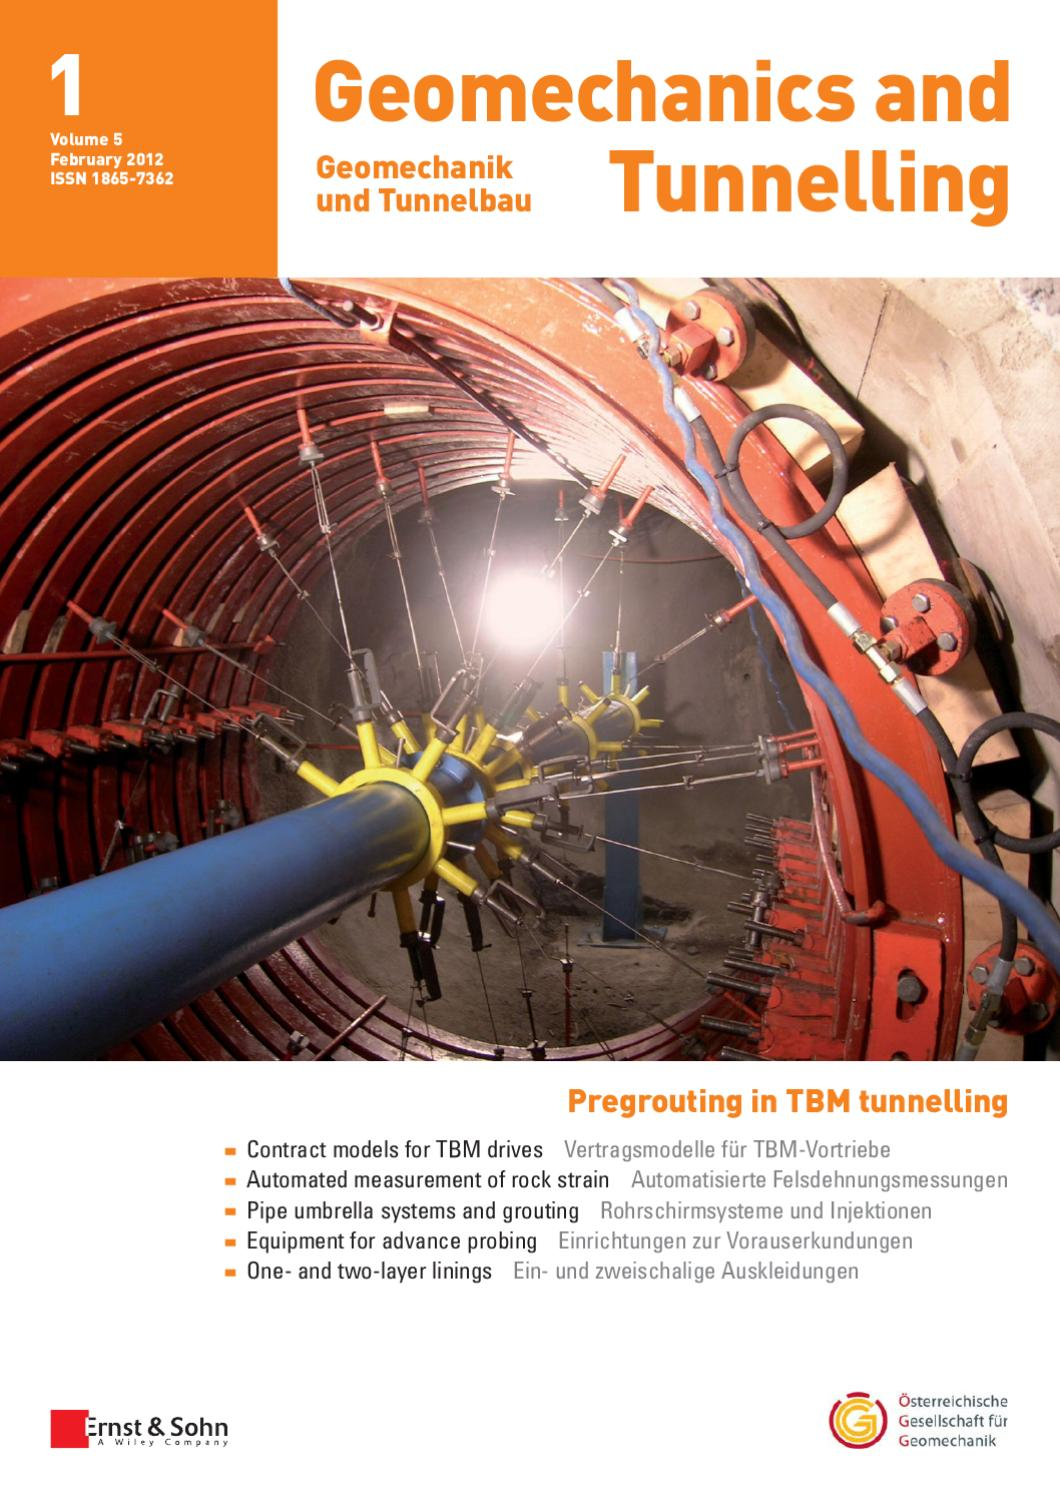 Geomechanics And Tunnelling 012012 Free Sample Copy By Ernst Sohn